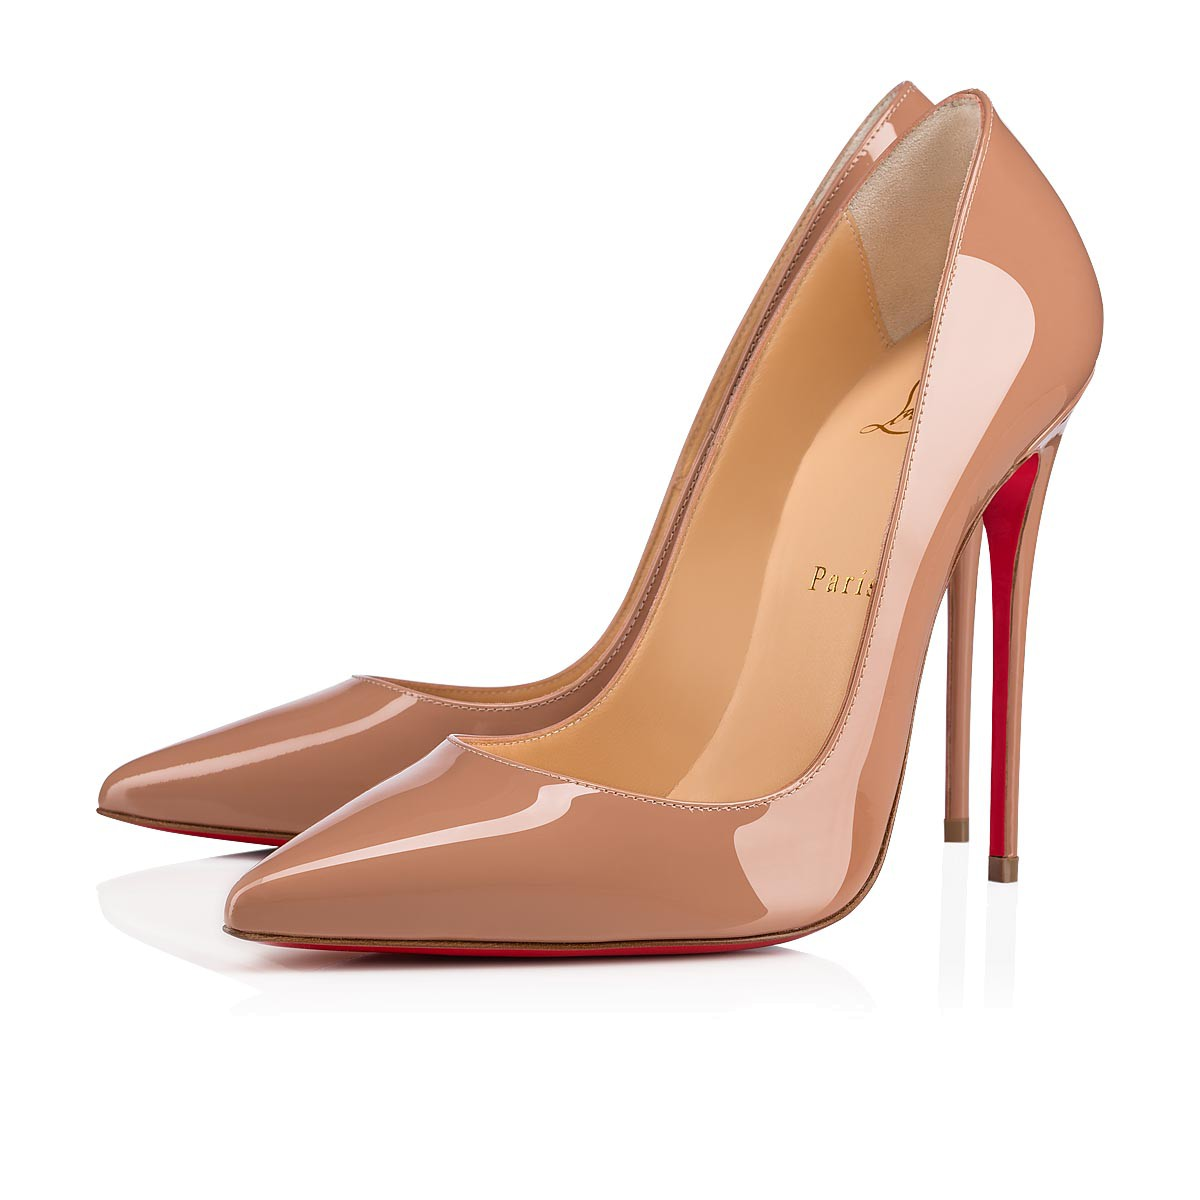 7fef838a1d0e So Kate 120 Nude Patent Leather - Women Shoes - Christian Louboutin